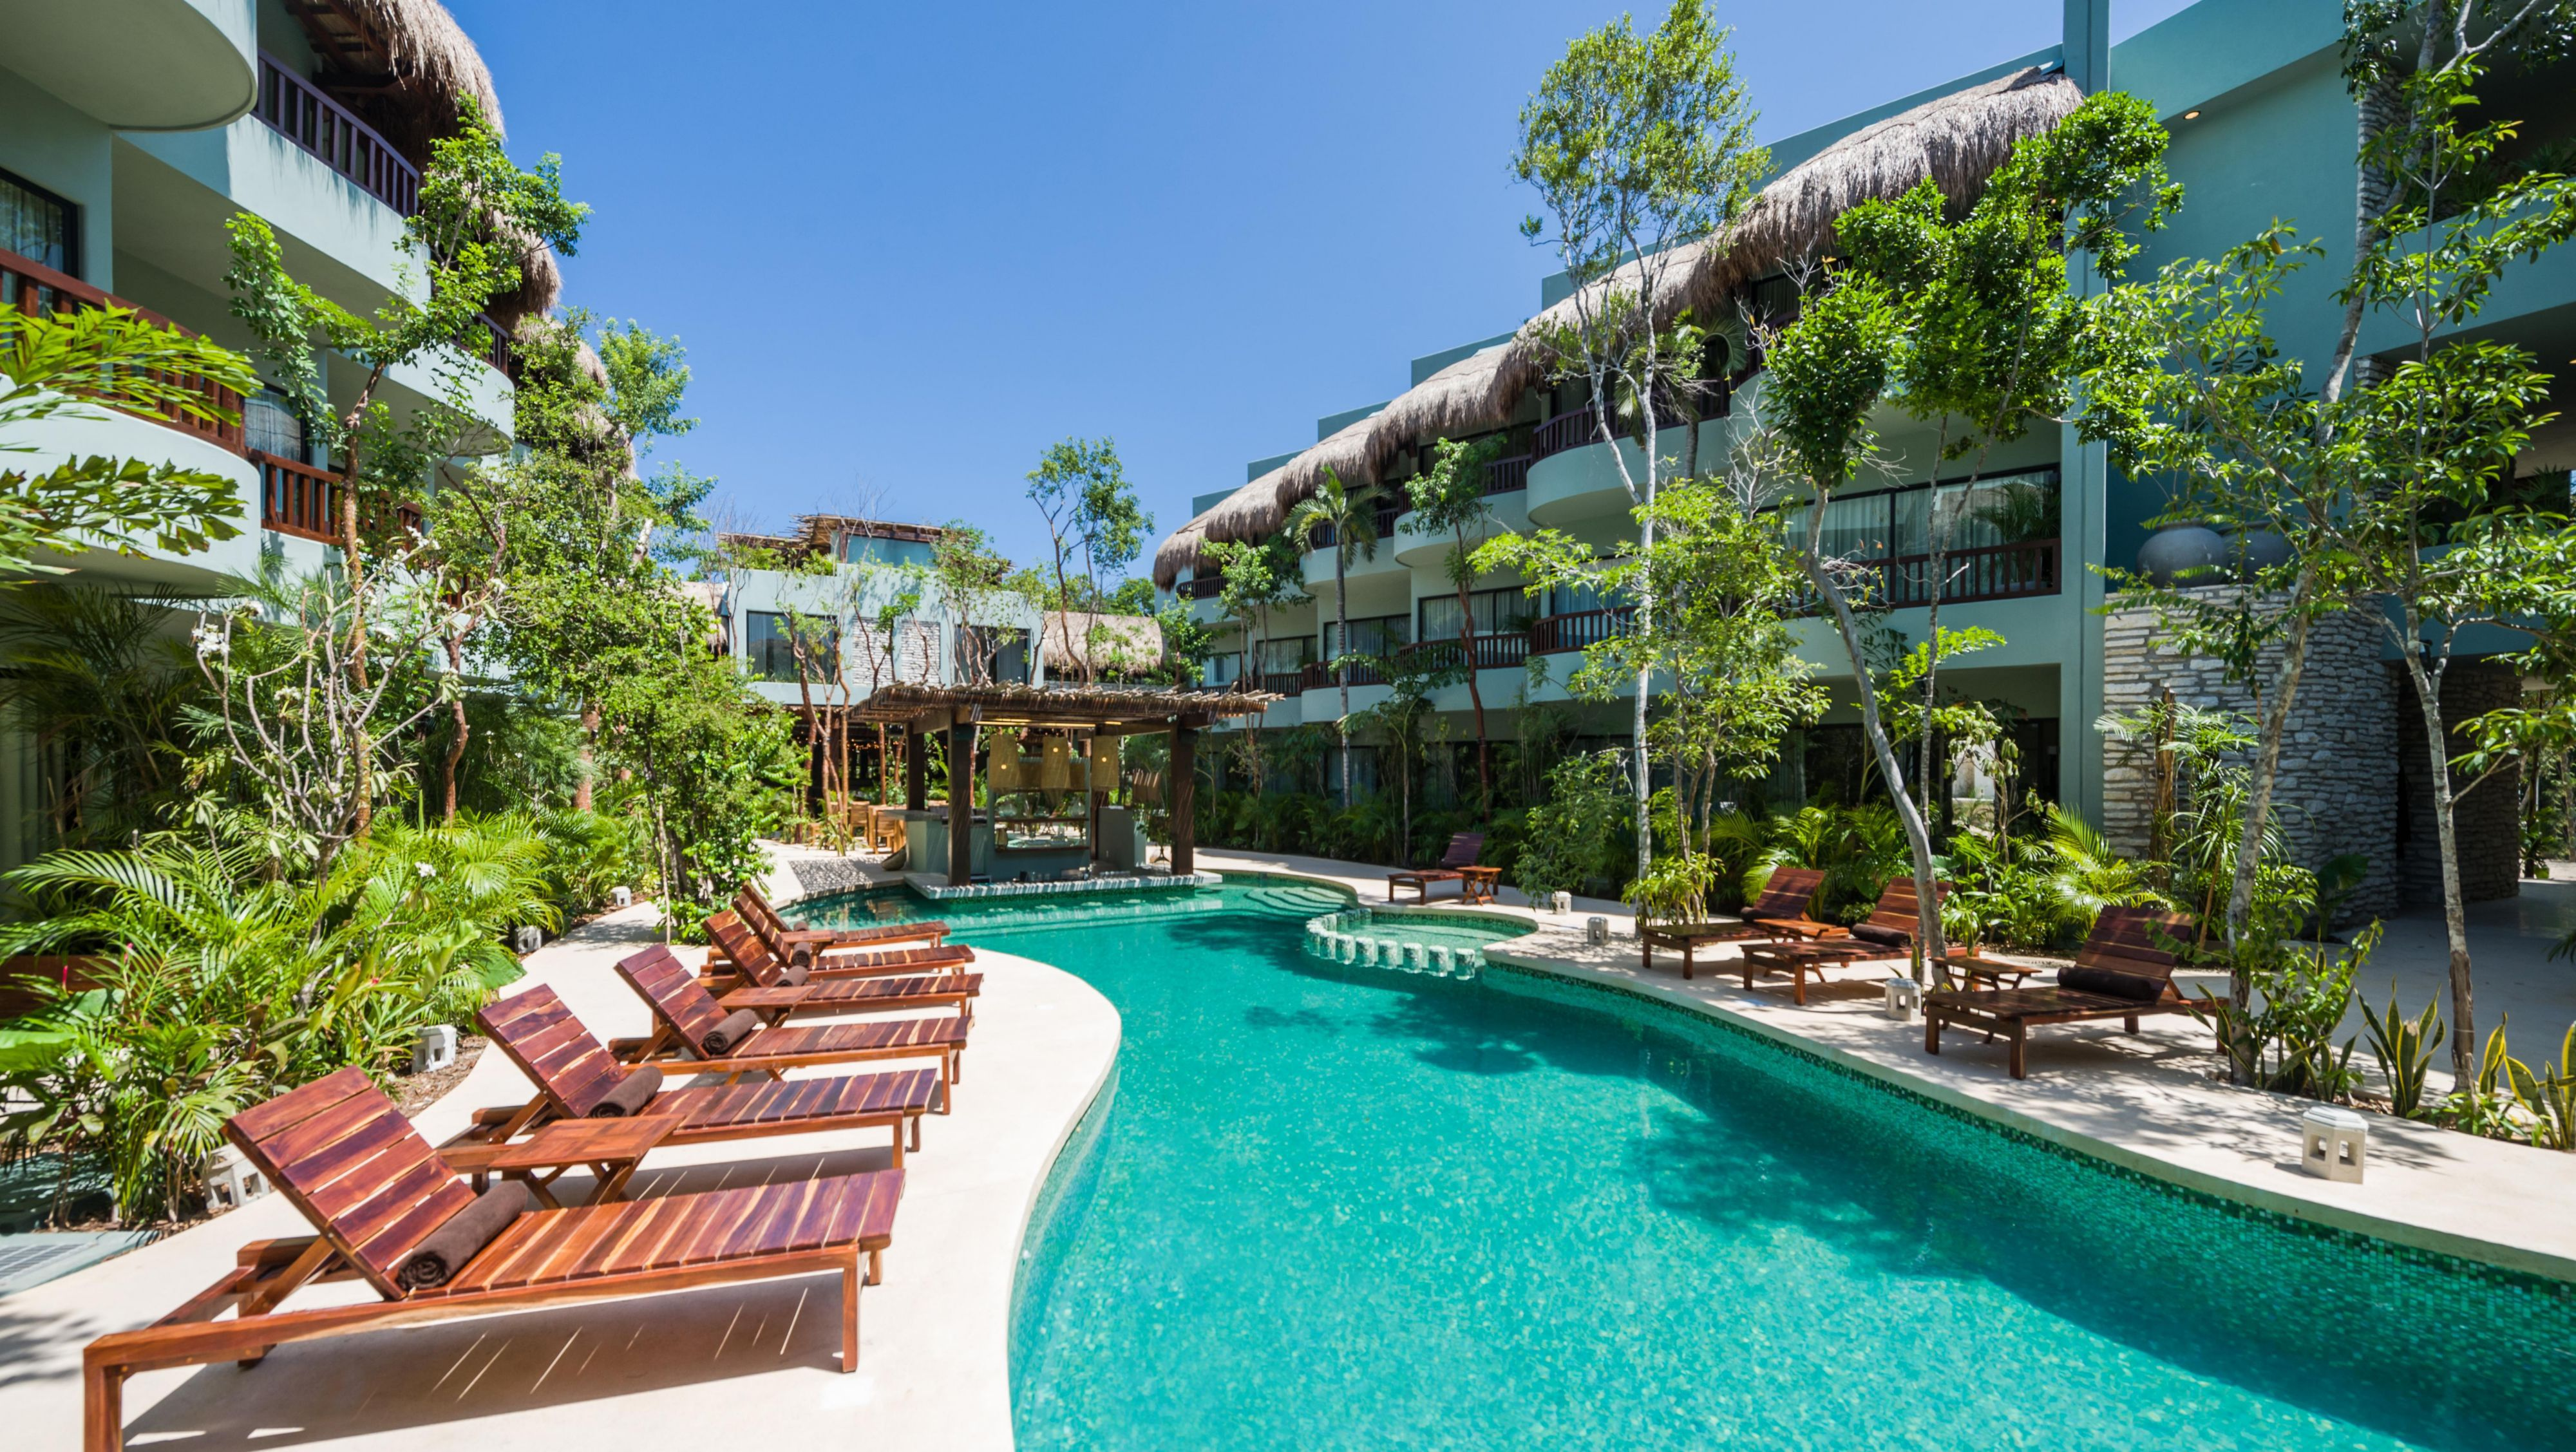 Kimpton Hotels Makes Its Debut in Mexico With A Boho-Chic Property in Tulum